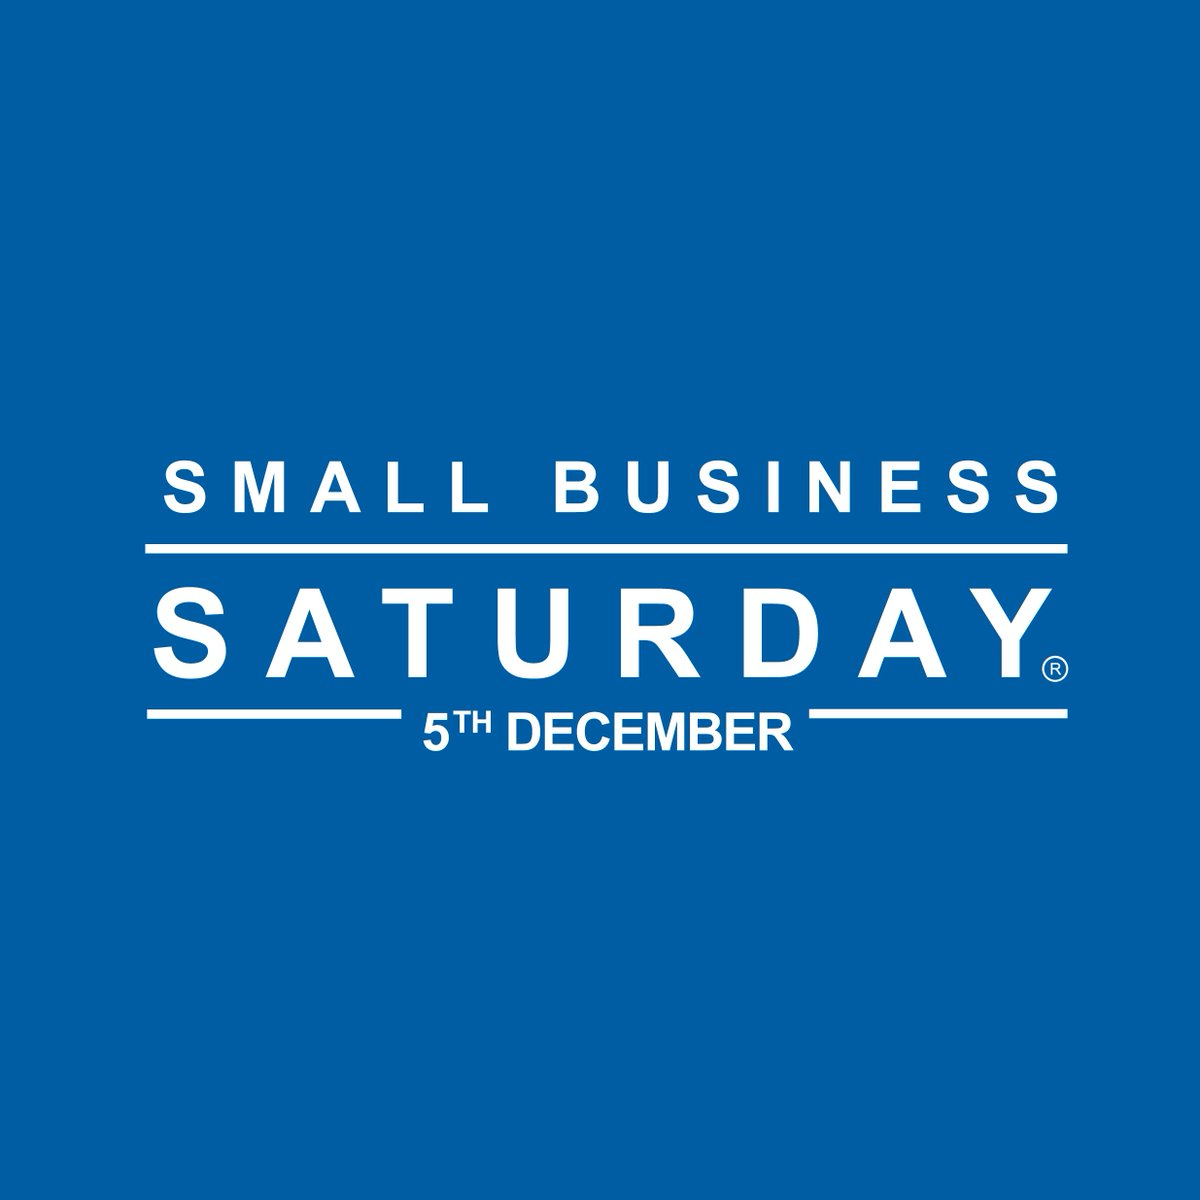 #SmallBizSatUK is happening on 5th Dec!  Put this date to your diary & get involved - https://t.co/O0RcRBCt28  #BSH